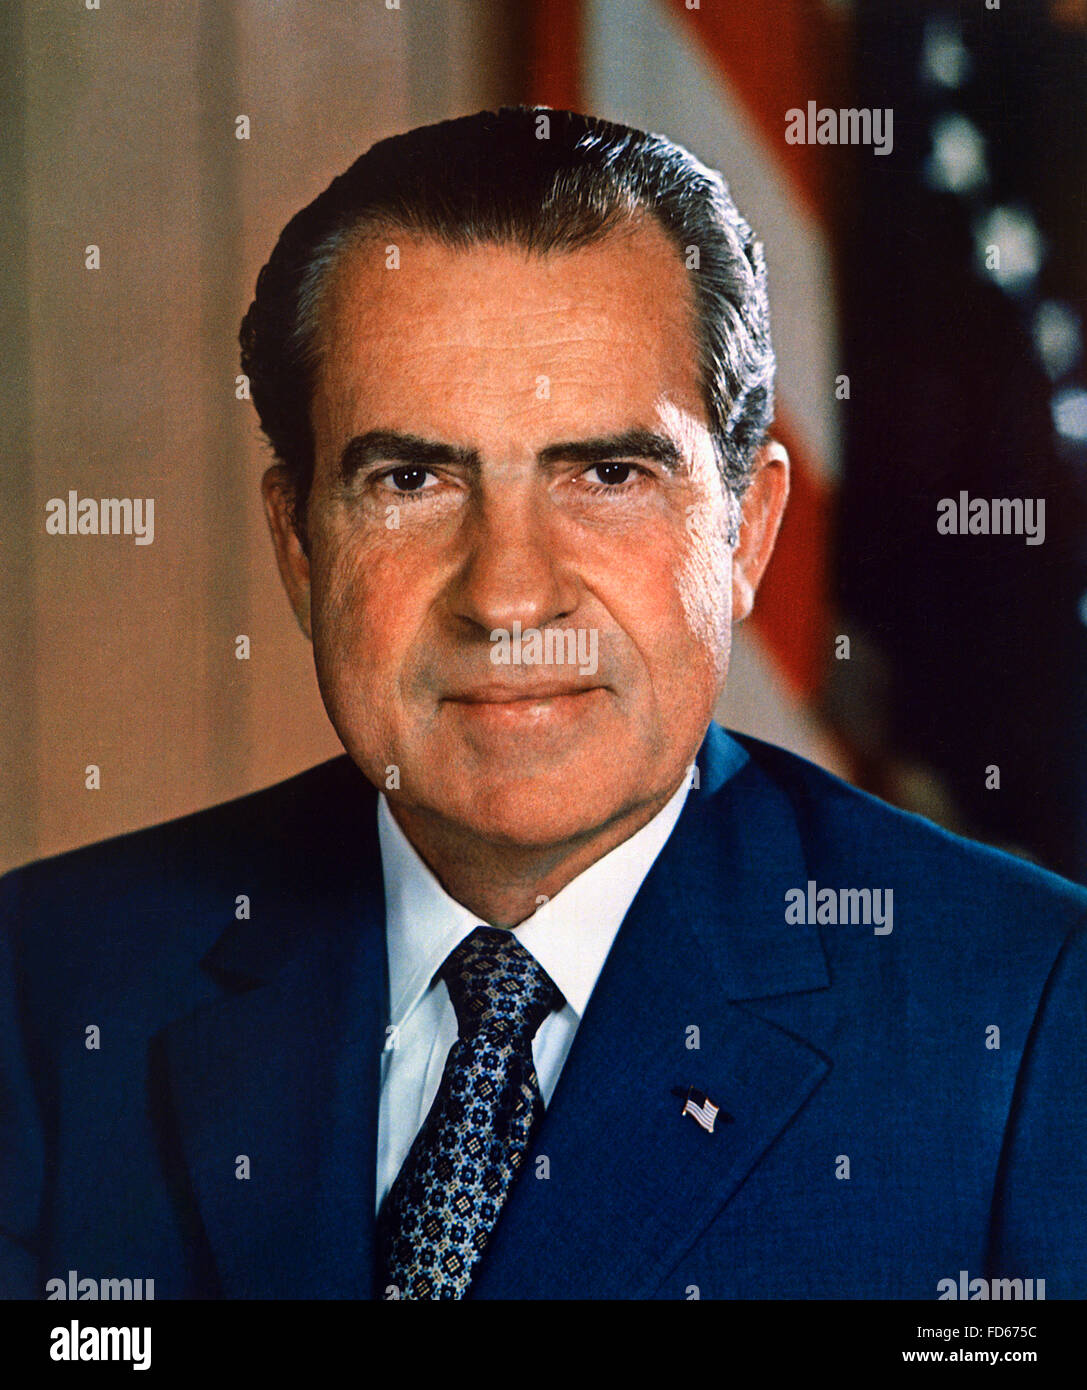 Richard Nixon, portrait of the  the 37th President of the USA - Stock Image